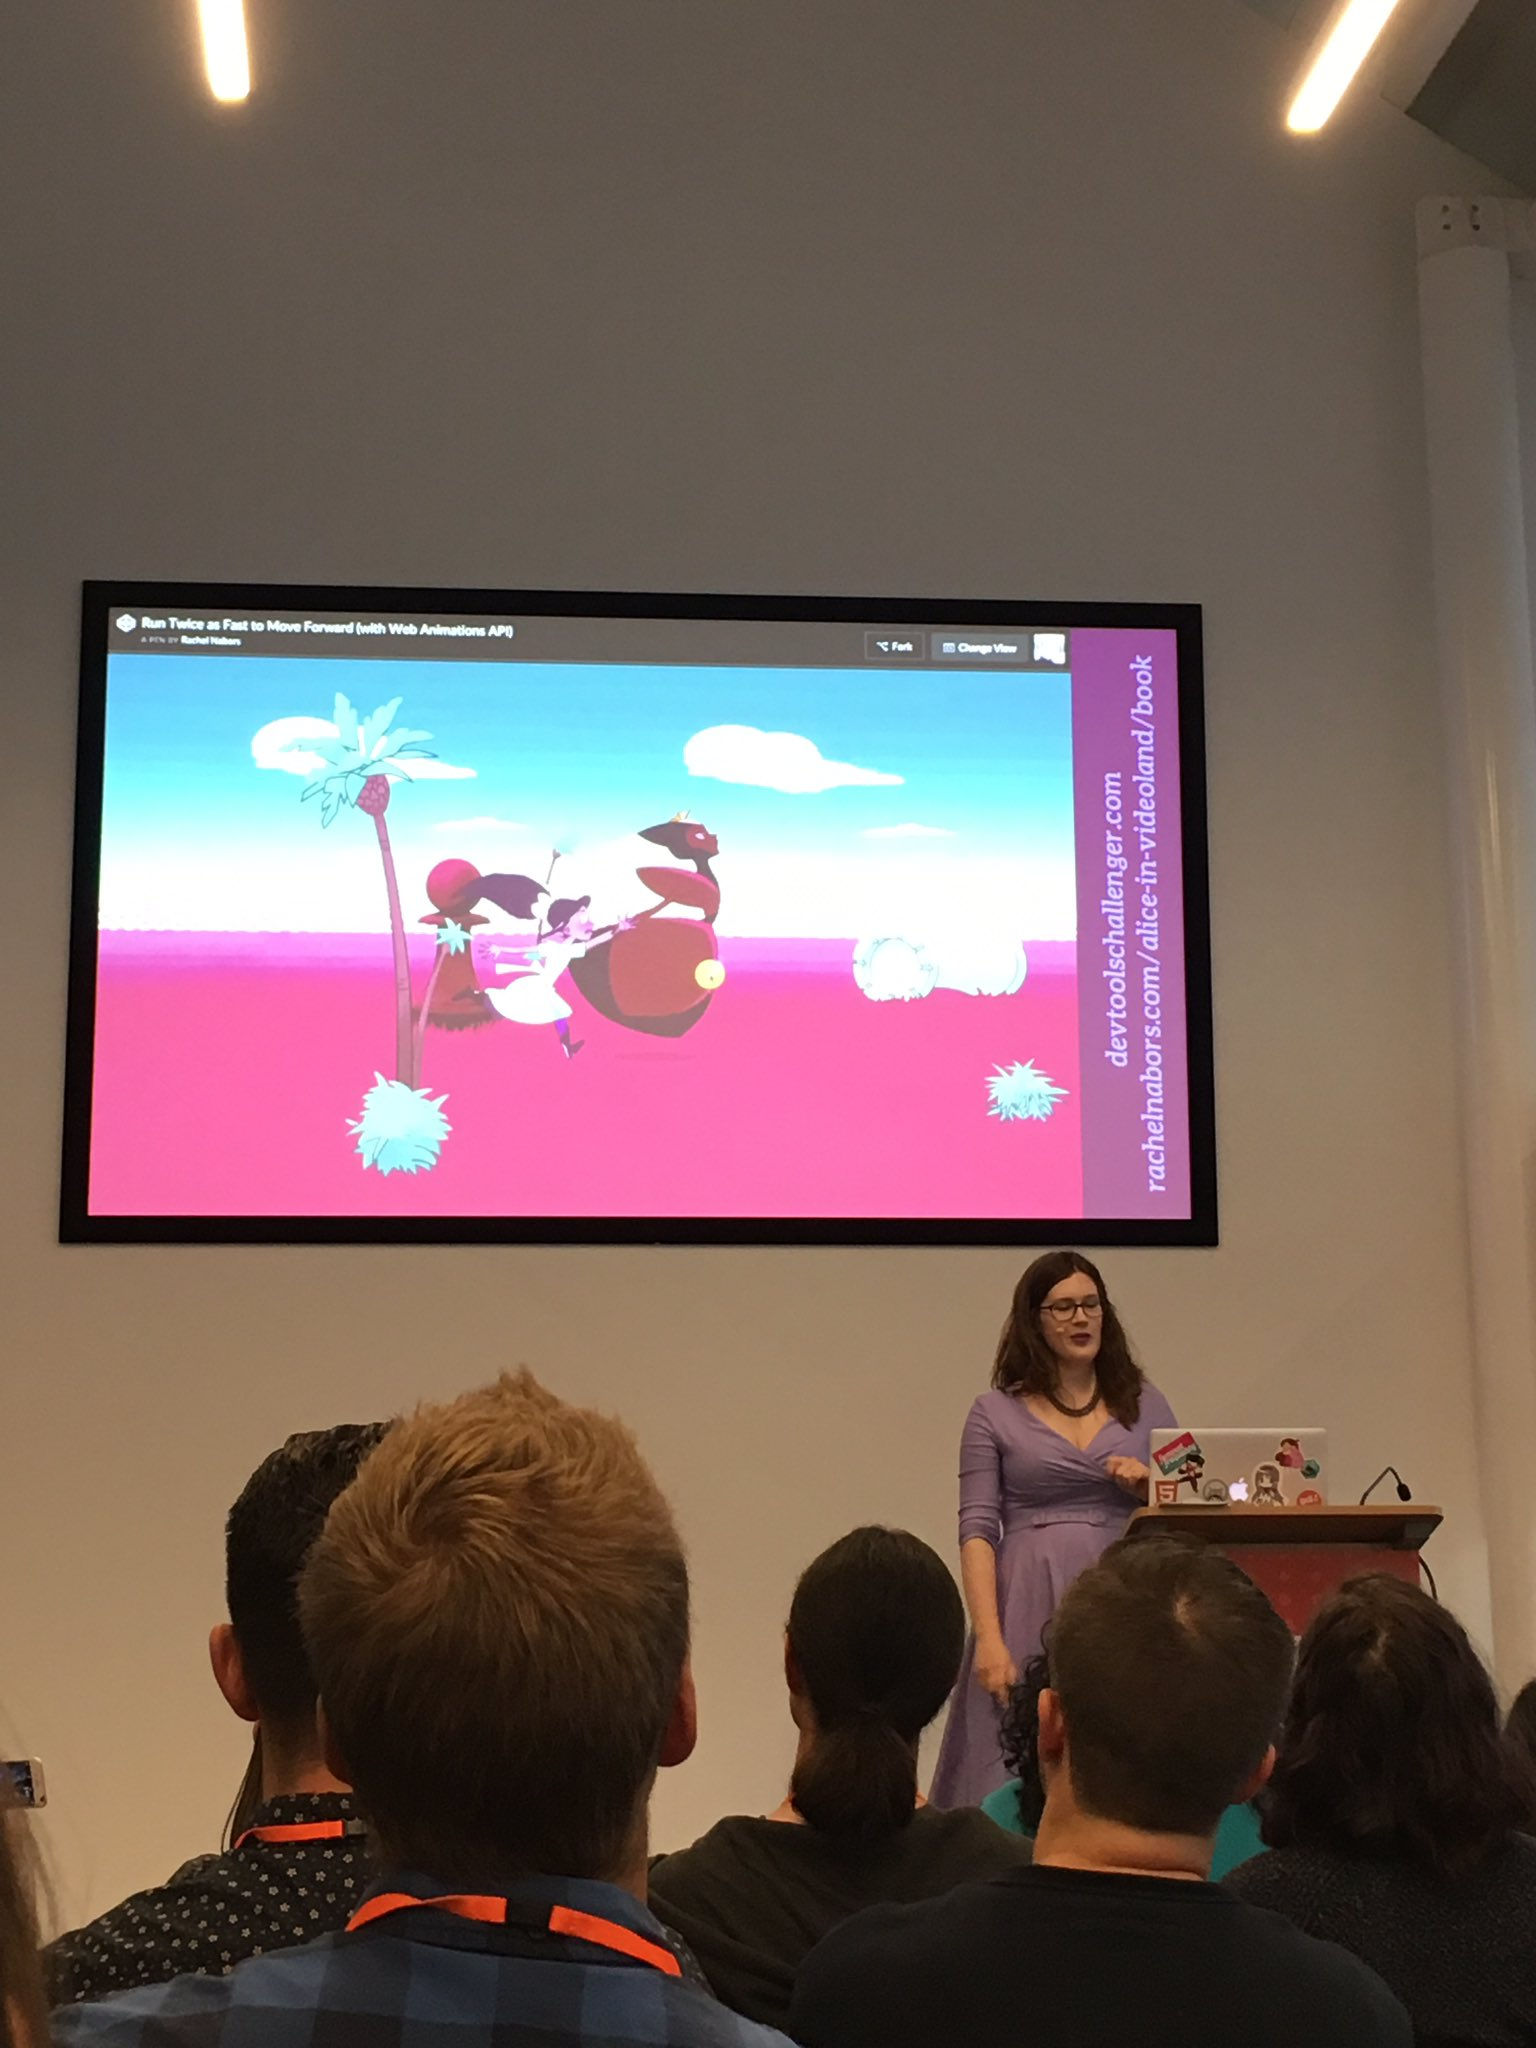 Wow, my appreciation for web animation has grown to much today thanks to @rachelnabors' captivating talk #respond17 https://t.co/5TPRvFIOpg